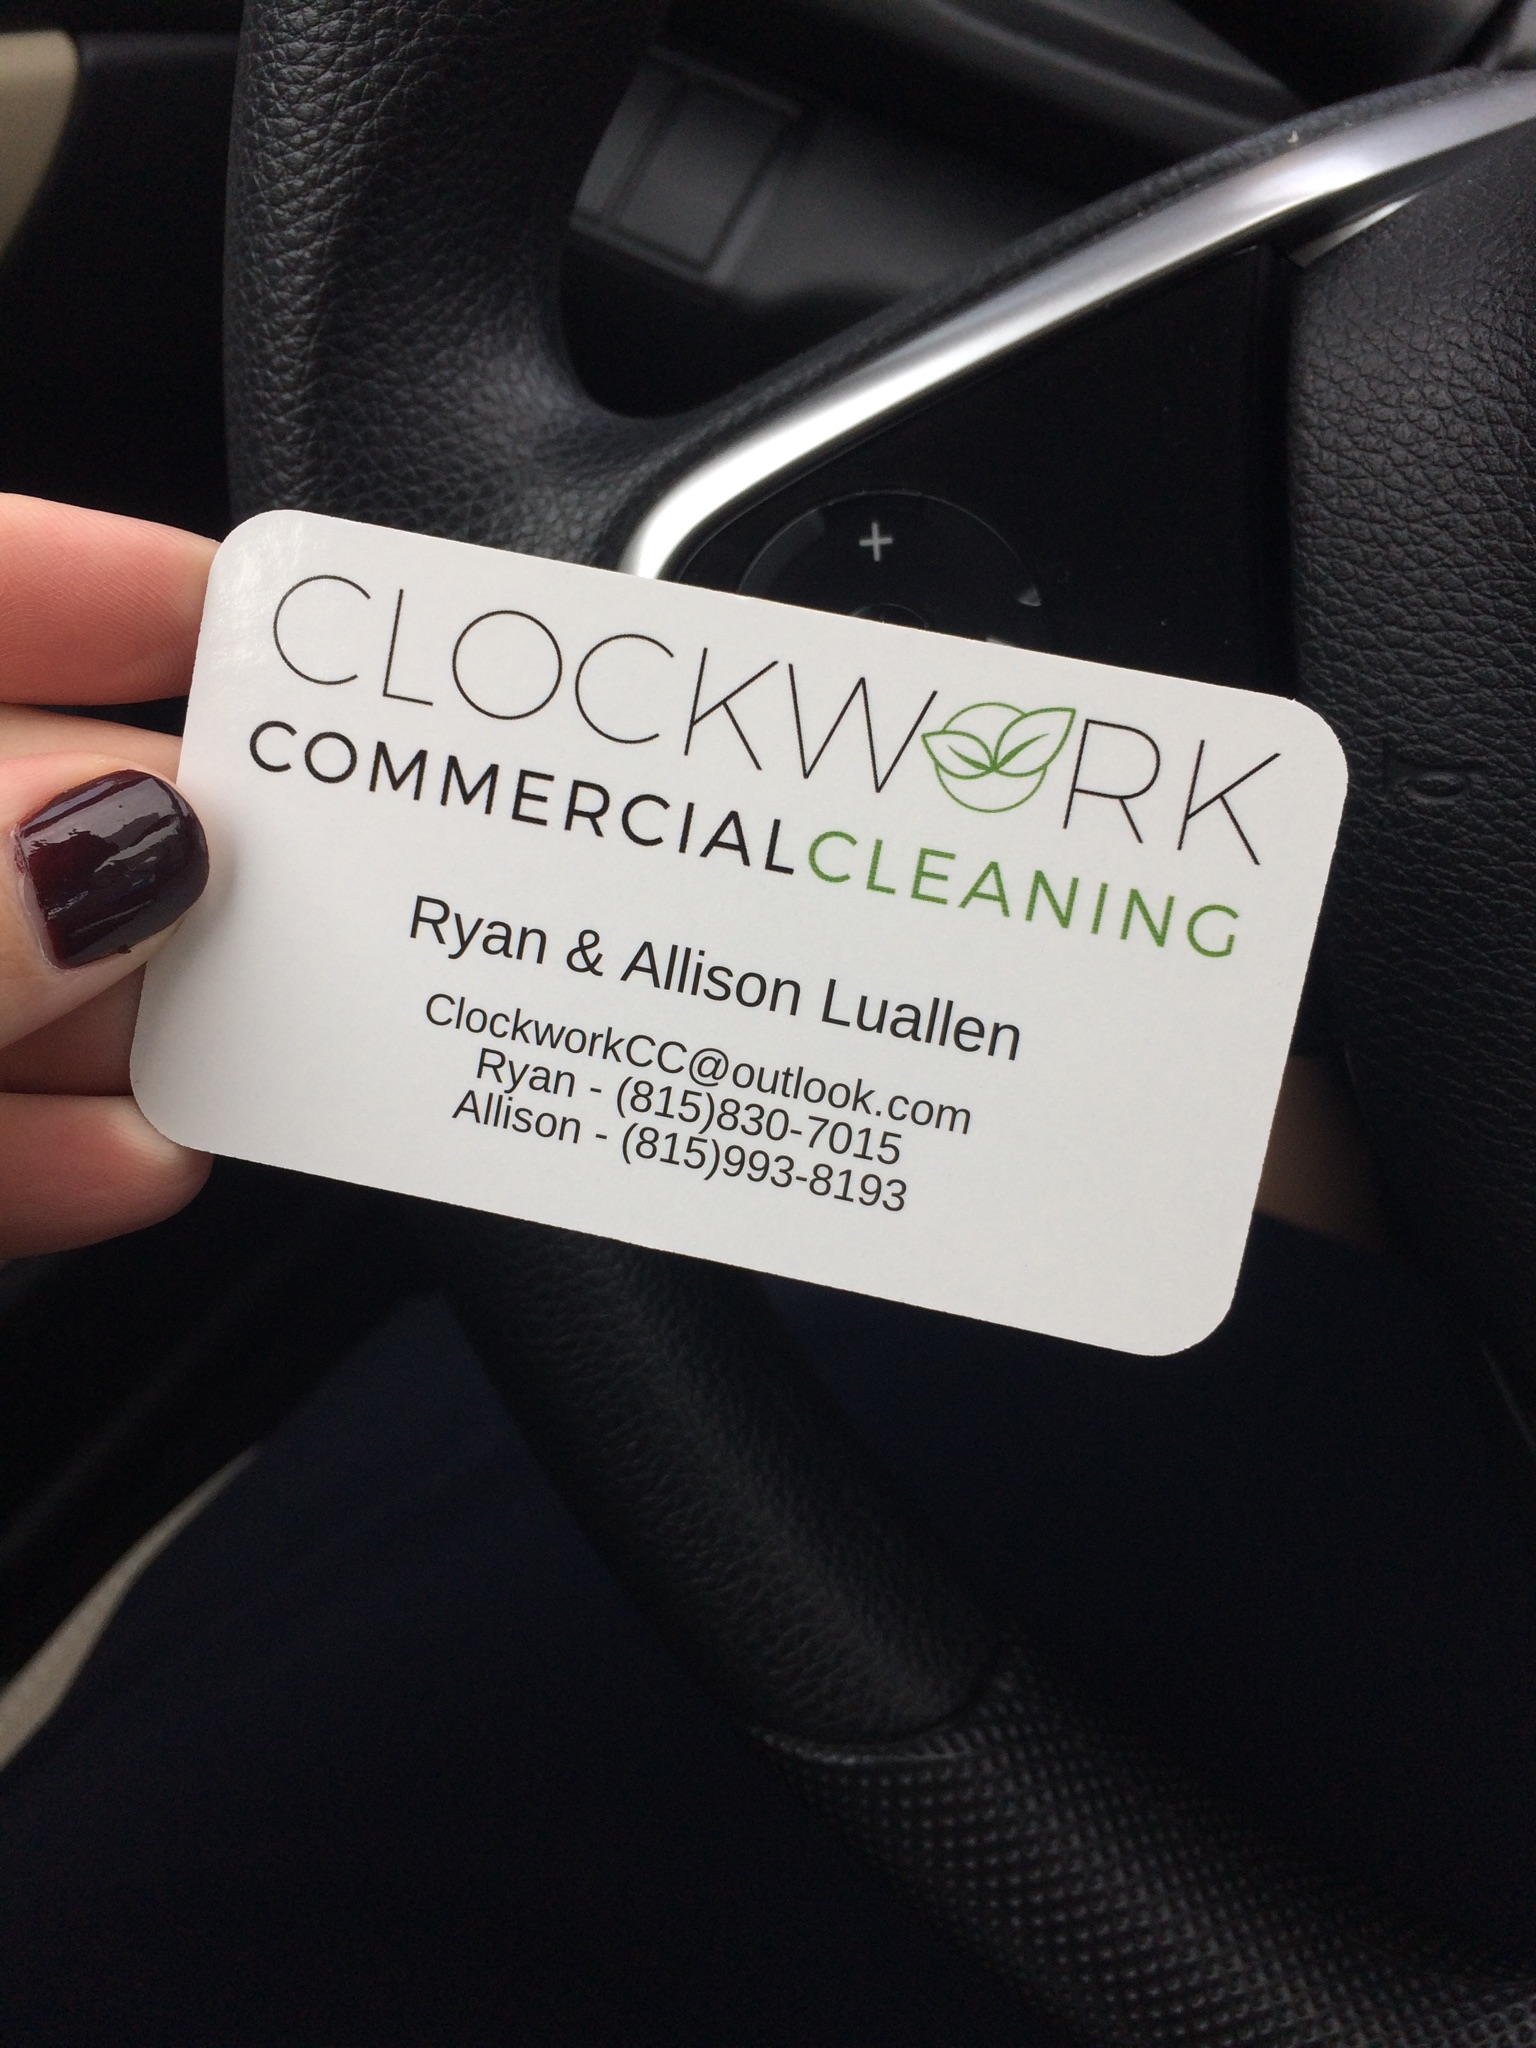 Clockwork Commercial Cleaning | Business Card | BelaMarca Studio